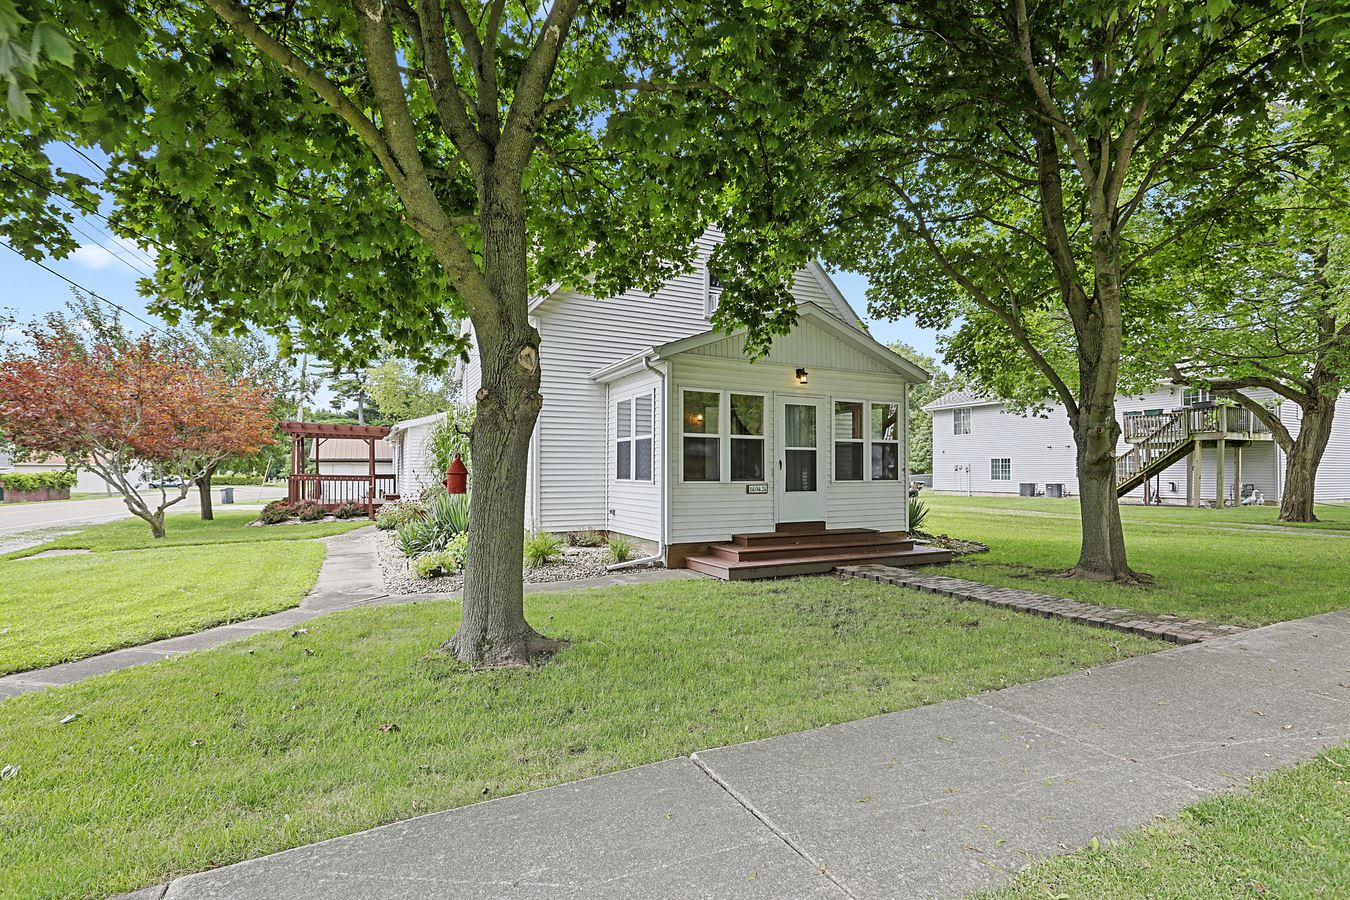 Photo for 102 N State Street, Saybrook, IL 61770 (MLS # 10803316)